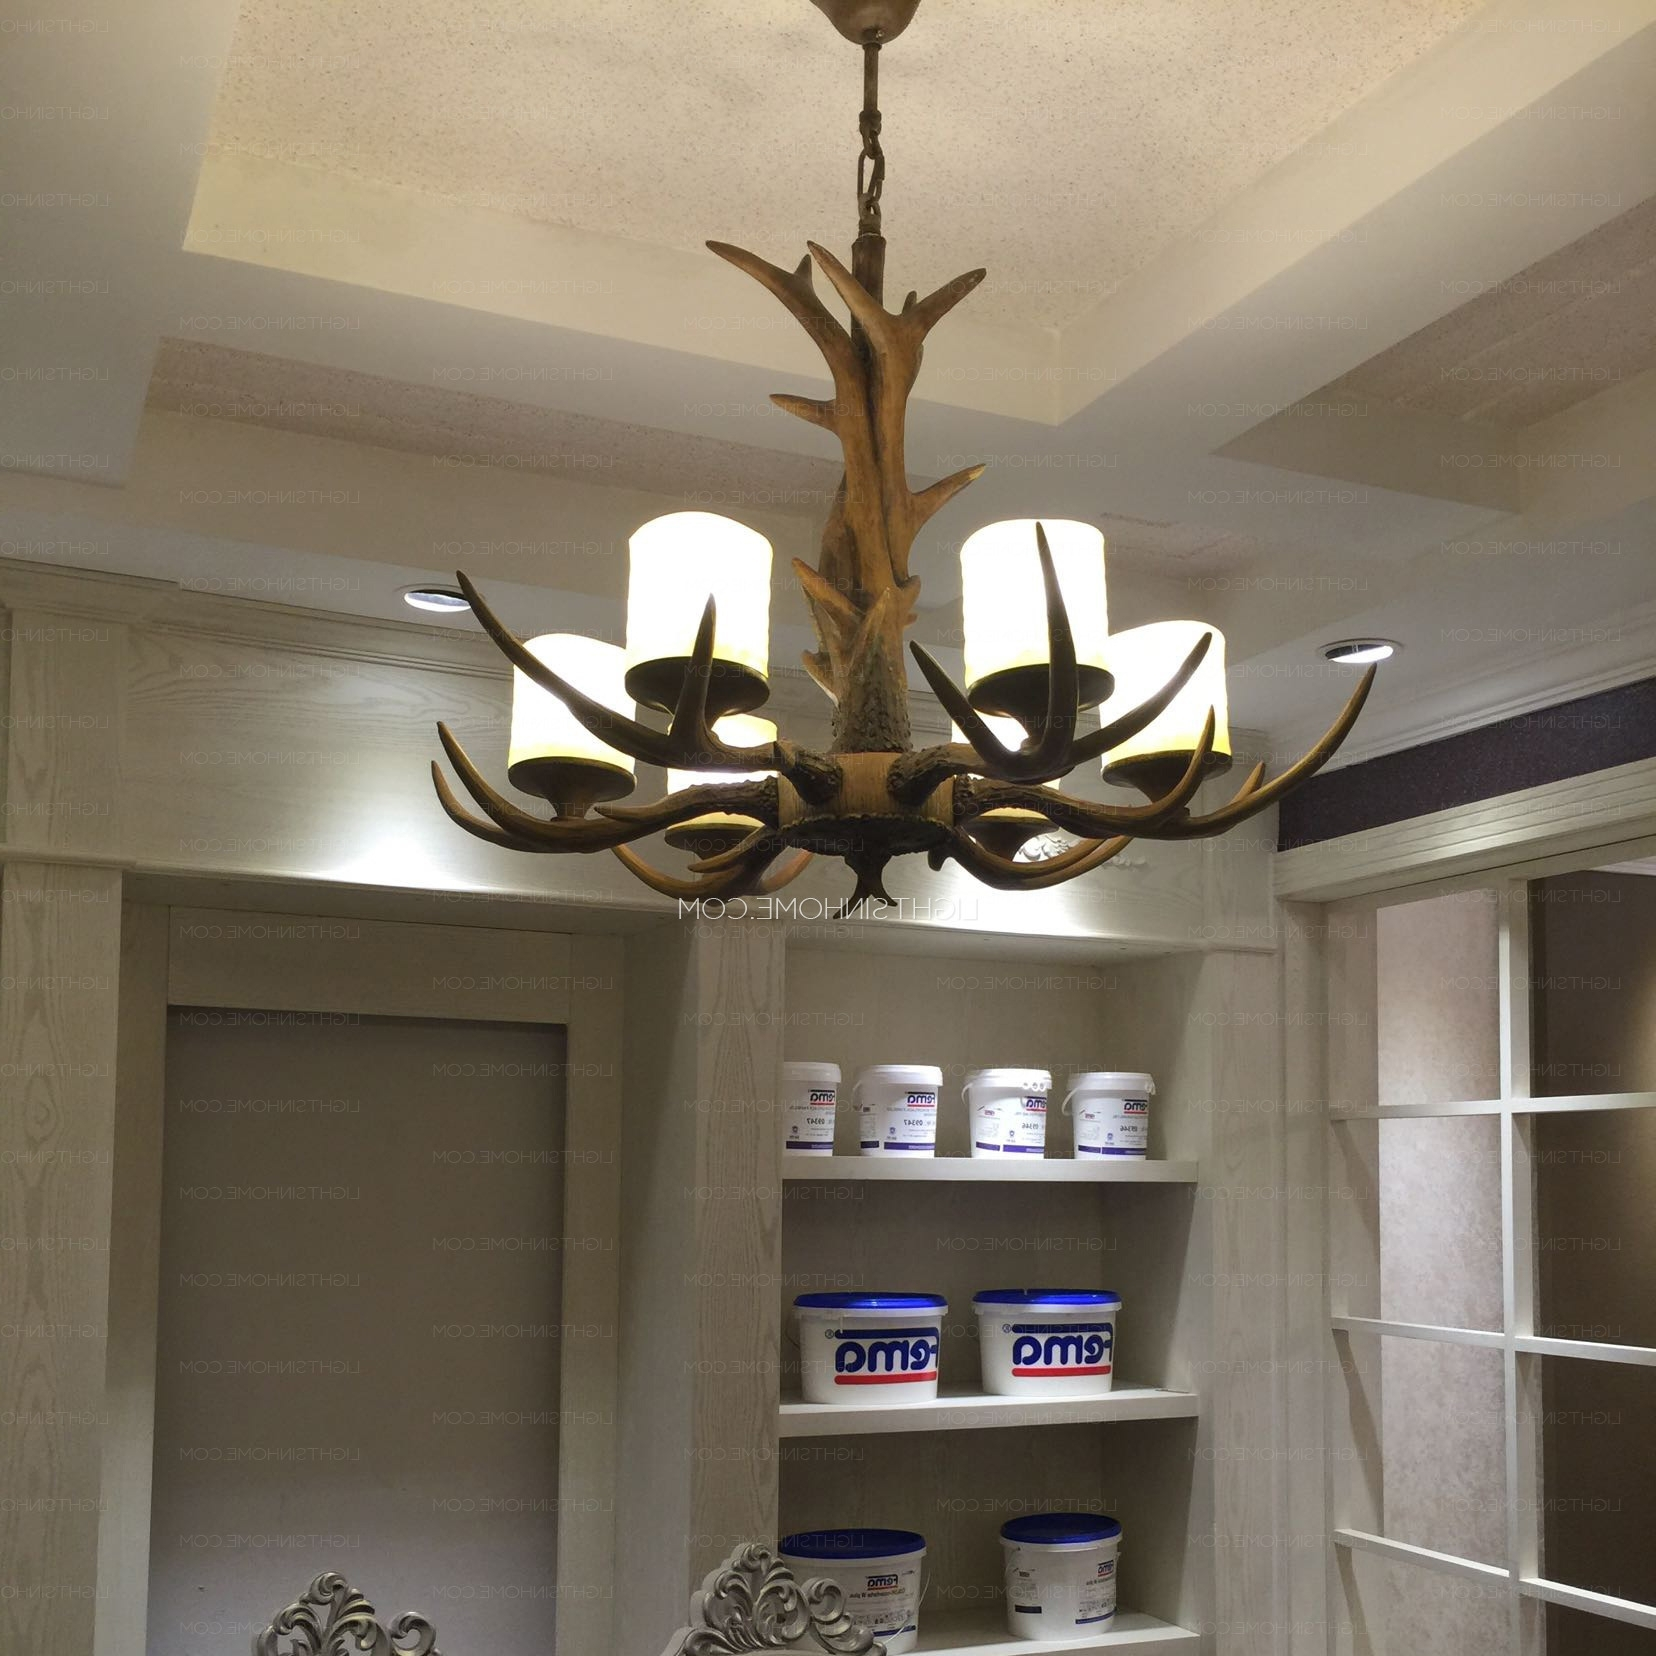 6 Light Resin Cylinder Shade Glass Antler Chandelier Intended For 2019 Modern Antler Chandelier (View 1 of 20)